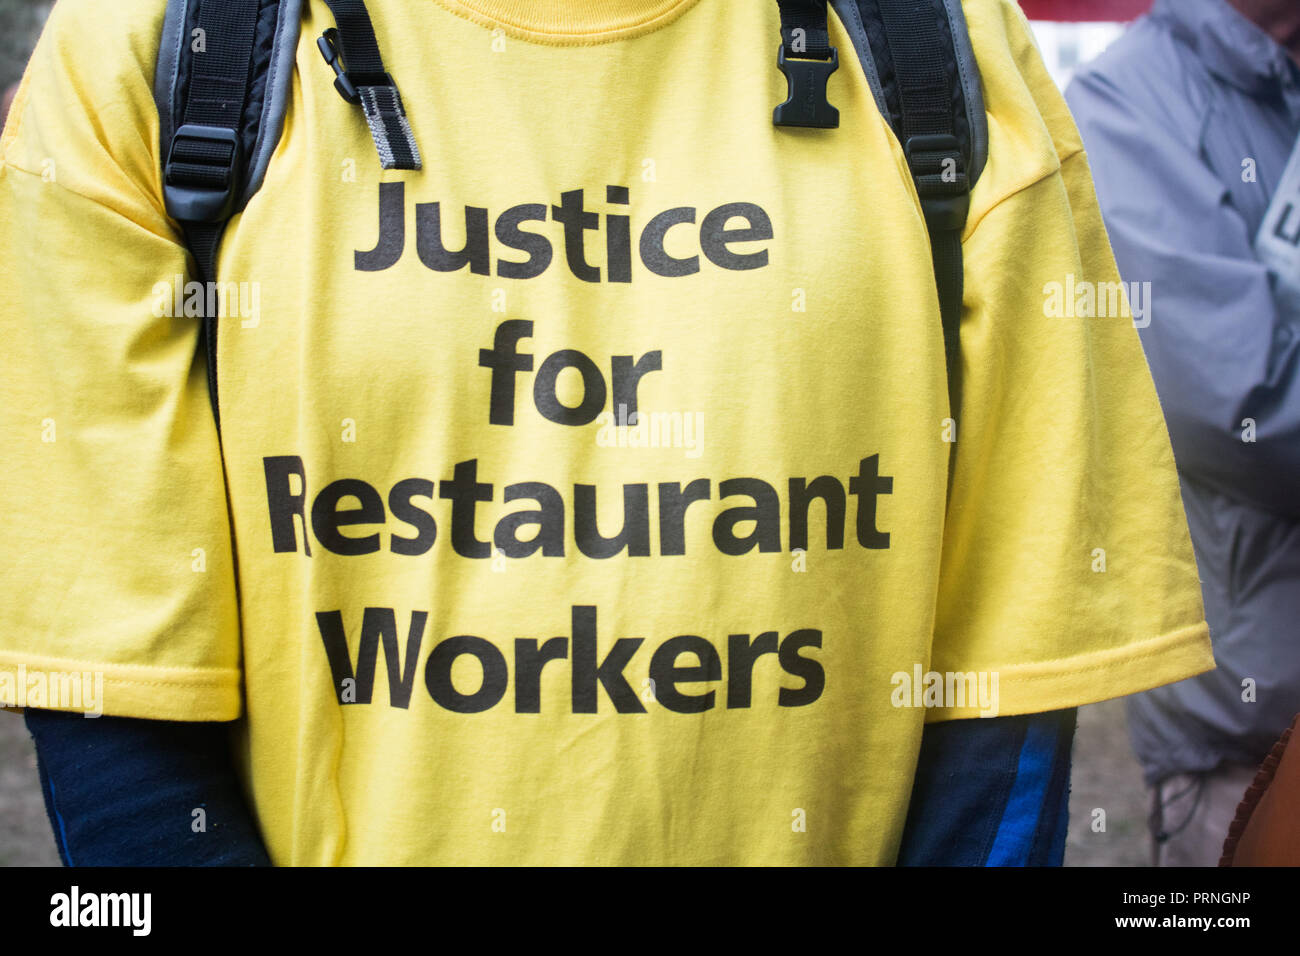 London UK 4th October 2018. Staff Workers from McDonald's, JD Wetherspoon and TGI Fridays and UberEats  organized by Unite Union  took part in a walkout strike in Leicester Square  to  campaign for higher wages and to be paid  £10 an hour and an end to Zero Hour contracts Credit: amer ghazzal/Alamy Live News - Stock Image